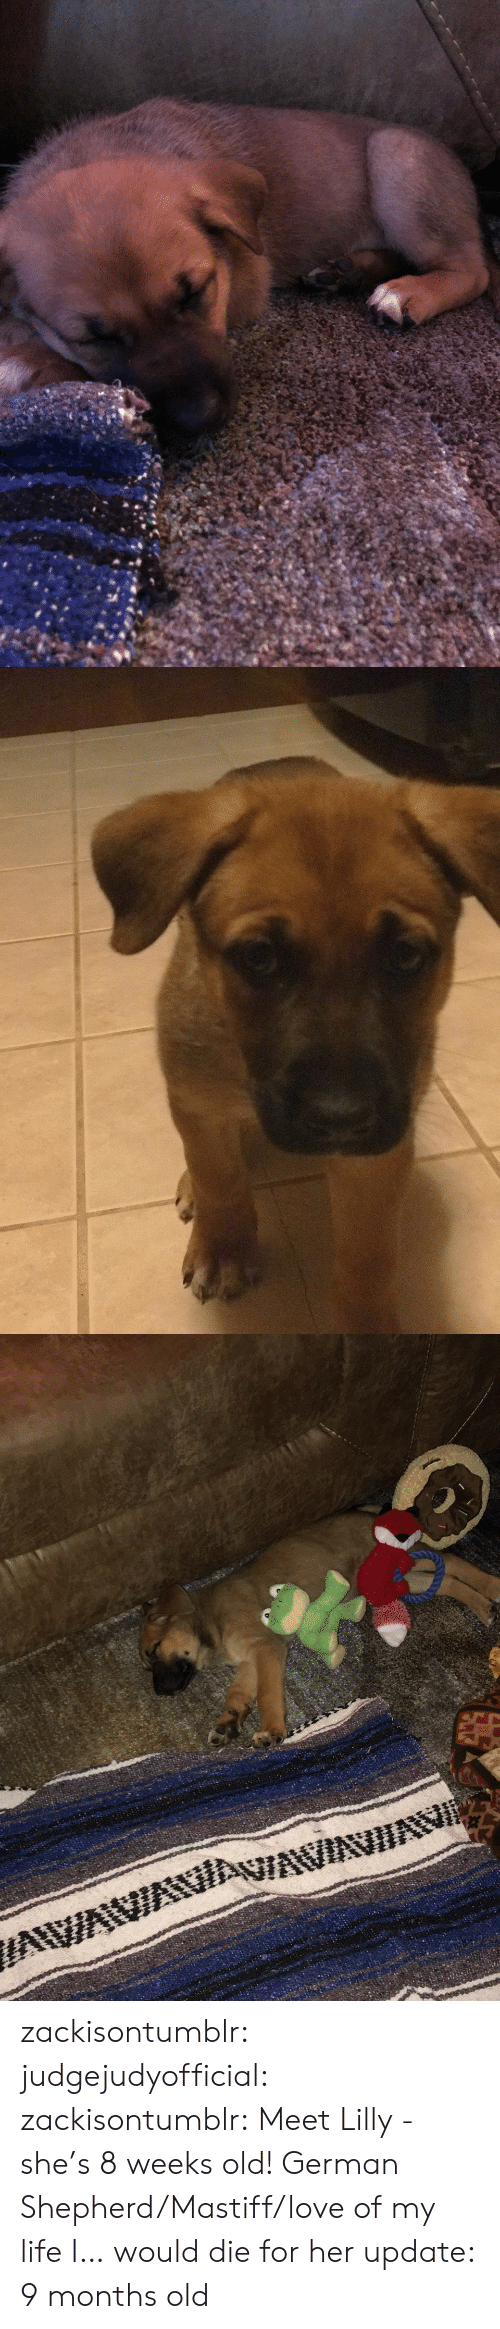 German Shepherd: zackisontumblr:  judgejudyofficial: zackisontumblr:  Meet Lilly - she's 8 weeks old! German Shepherd/Mastiff/love of my life  I… would die for her  update: 9 months old